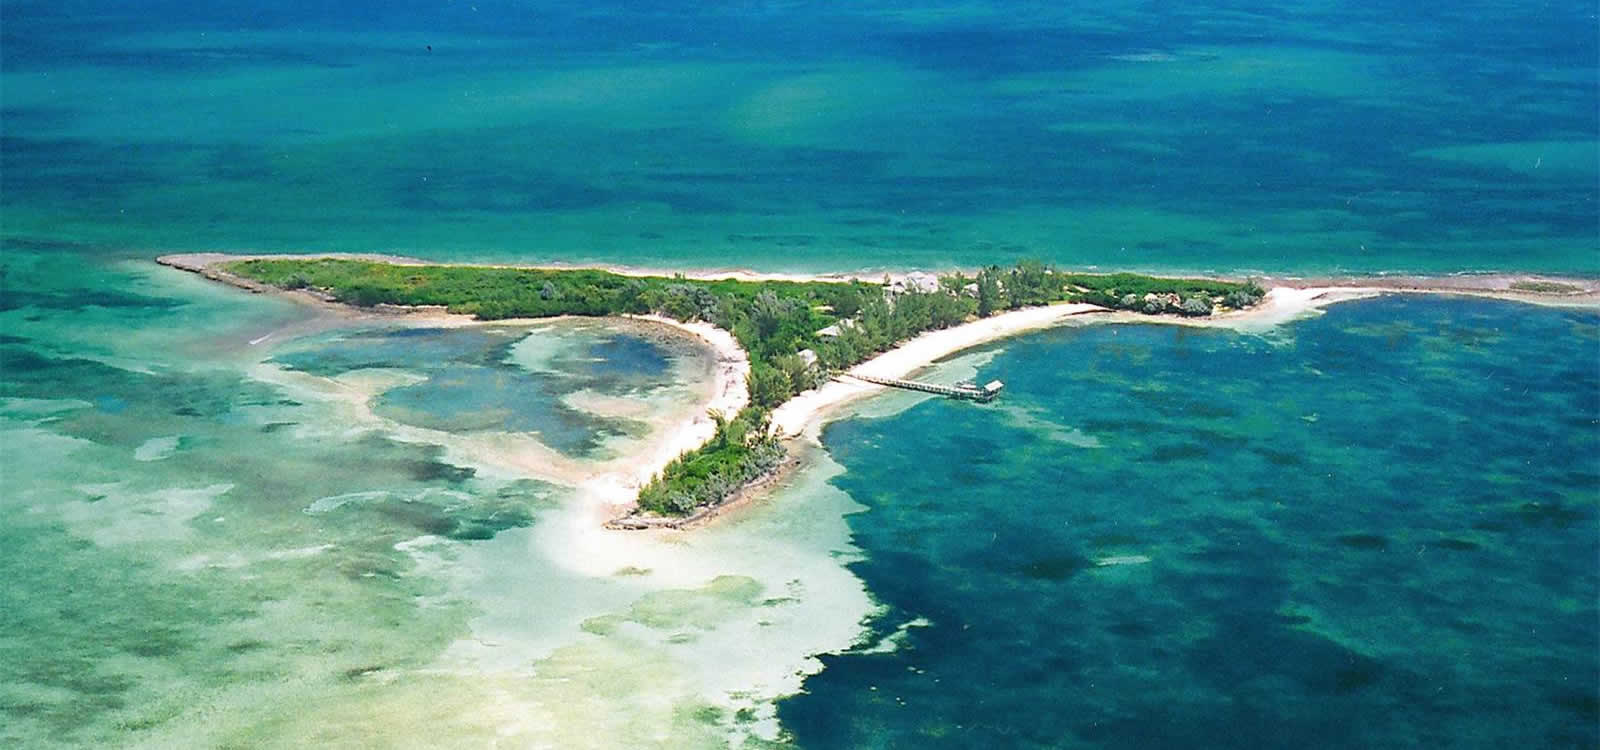 13 5 acre private island resort for sale abaco bahamas for Bahamas private island for sale